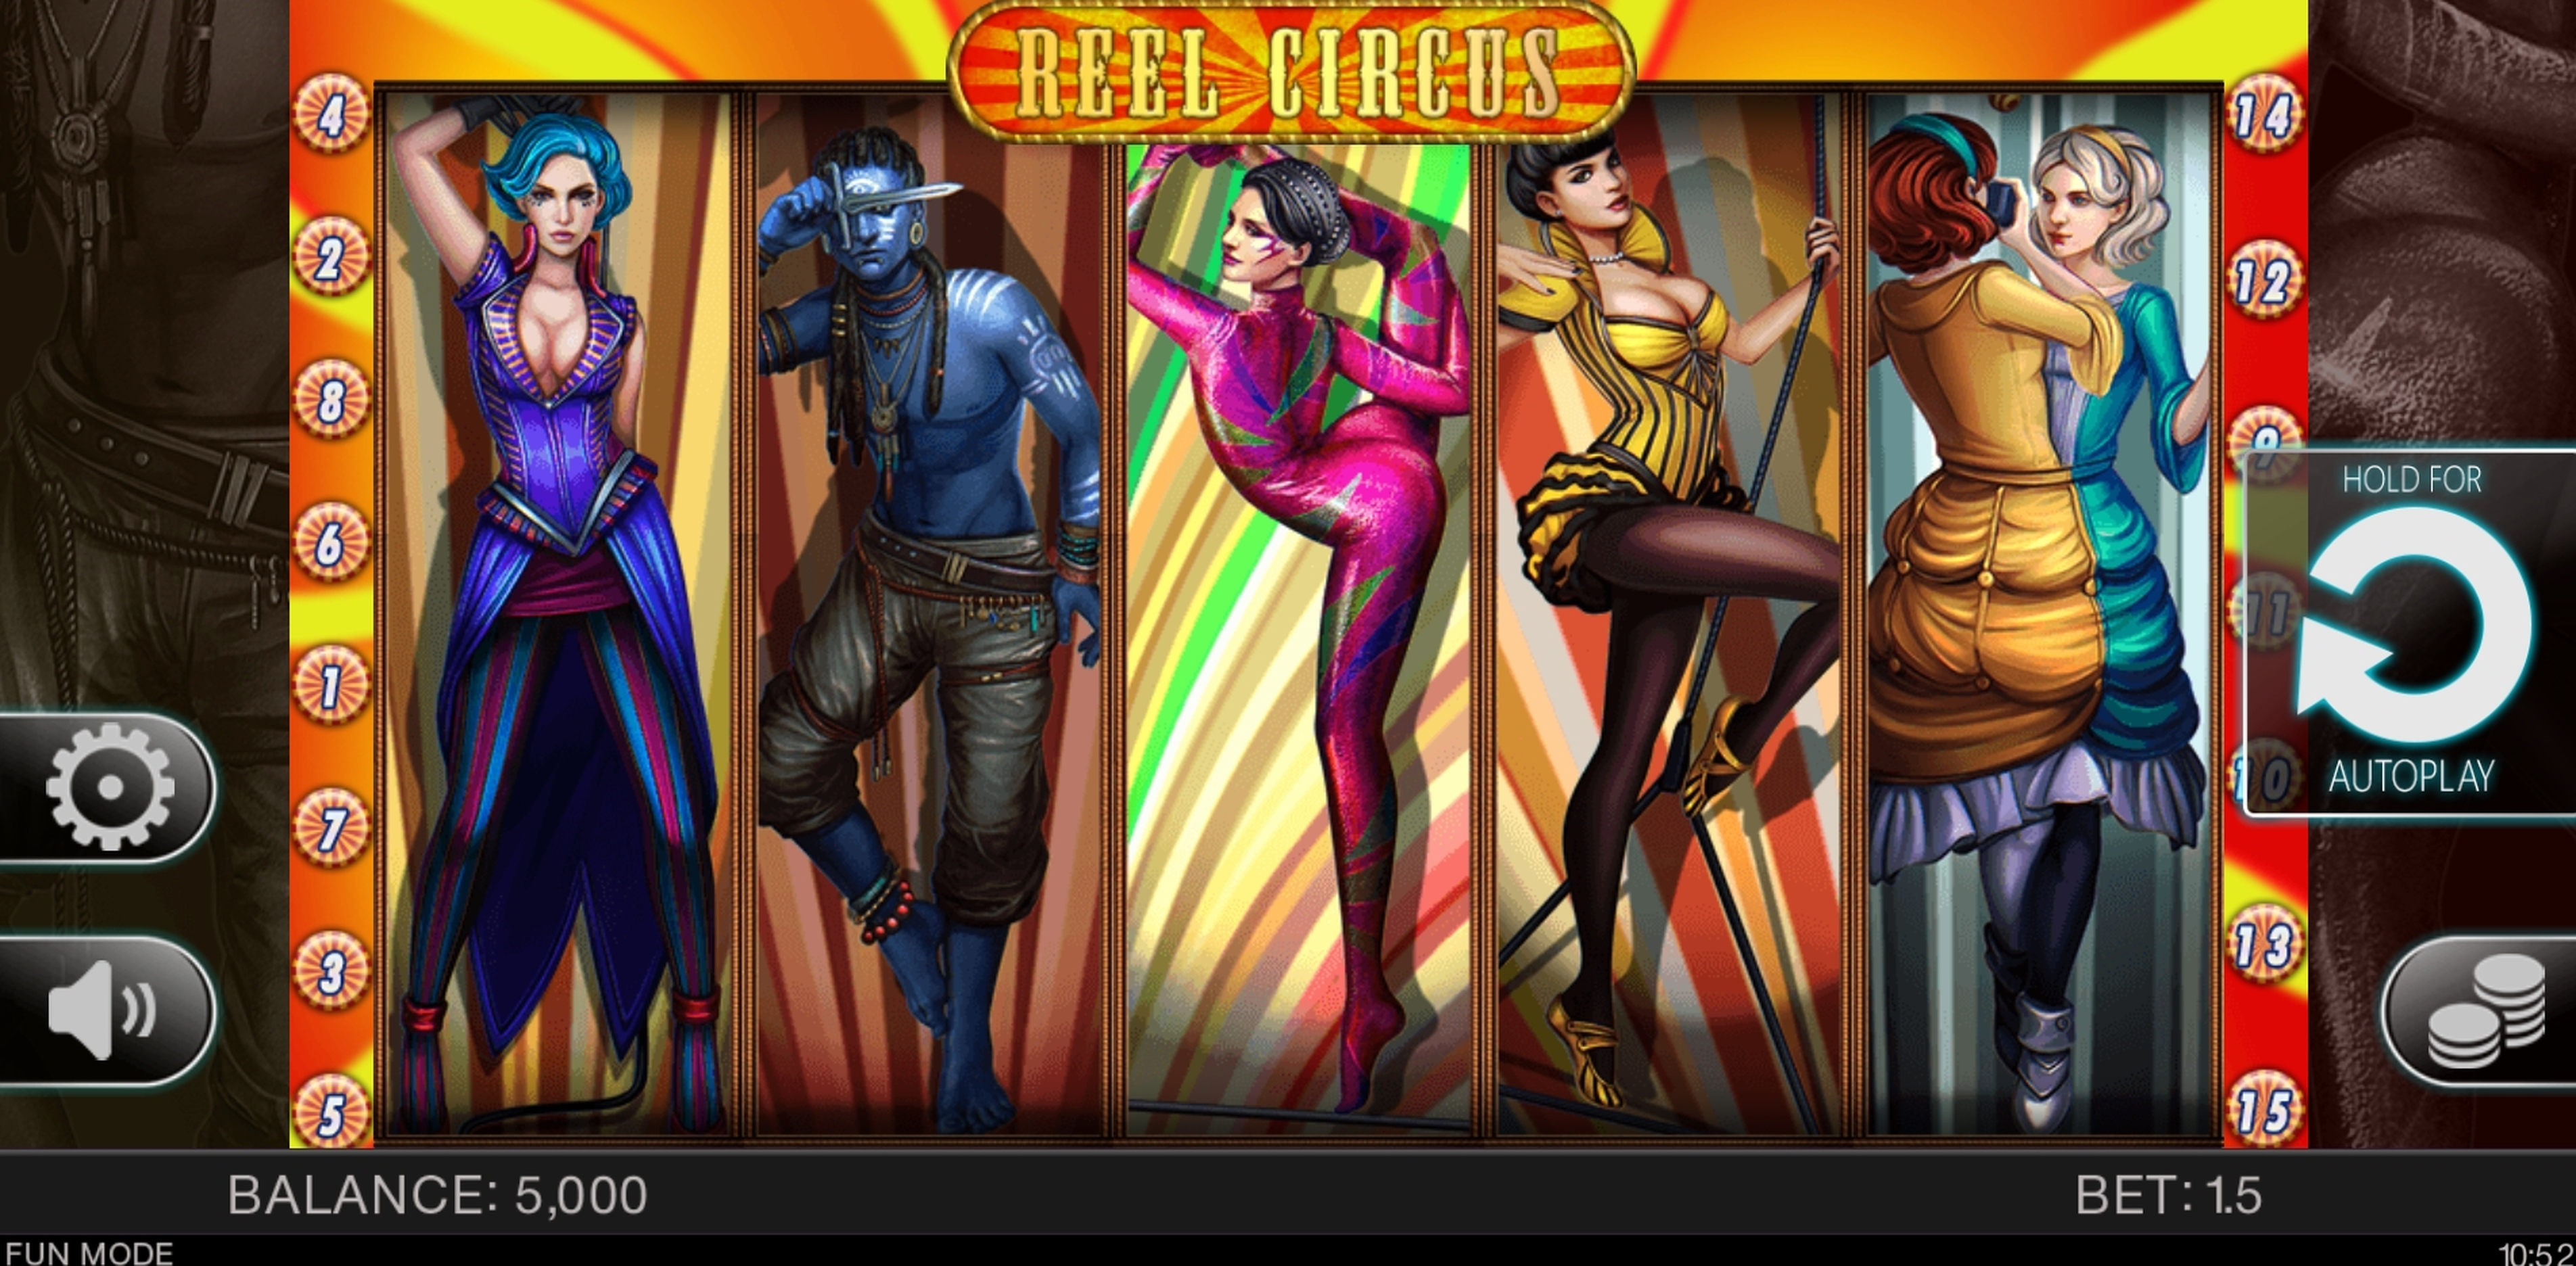 Reels in Reel Circus Slot Game by Spinomenal